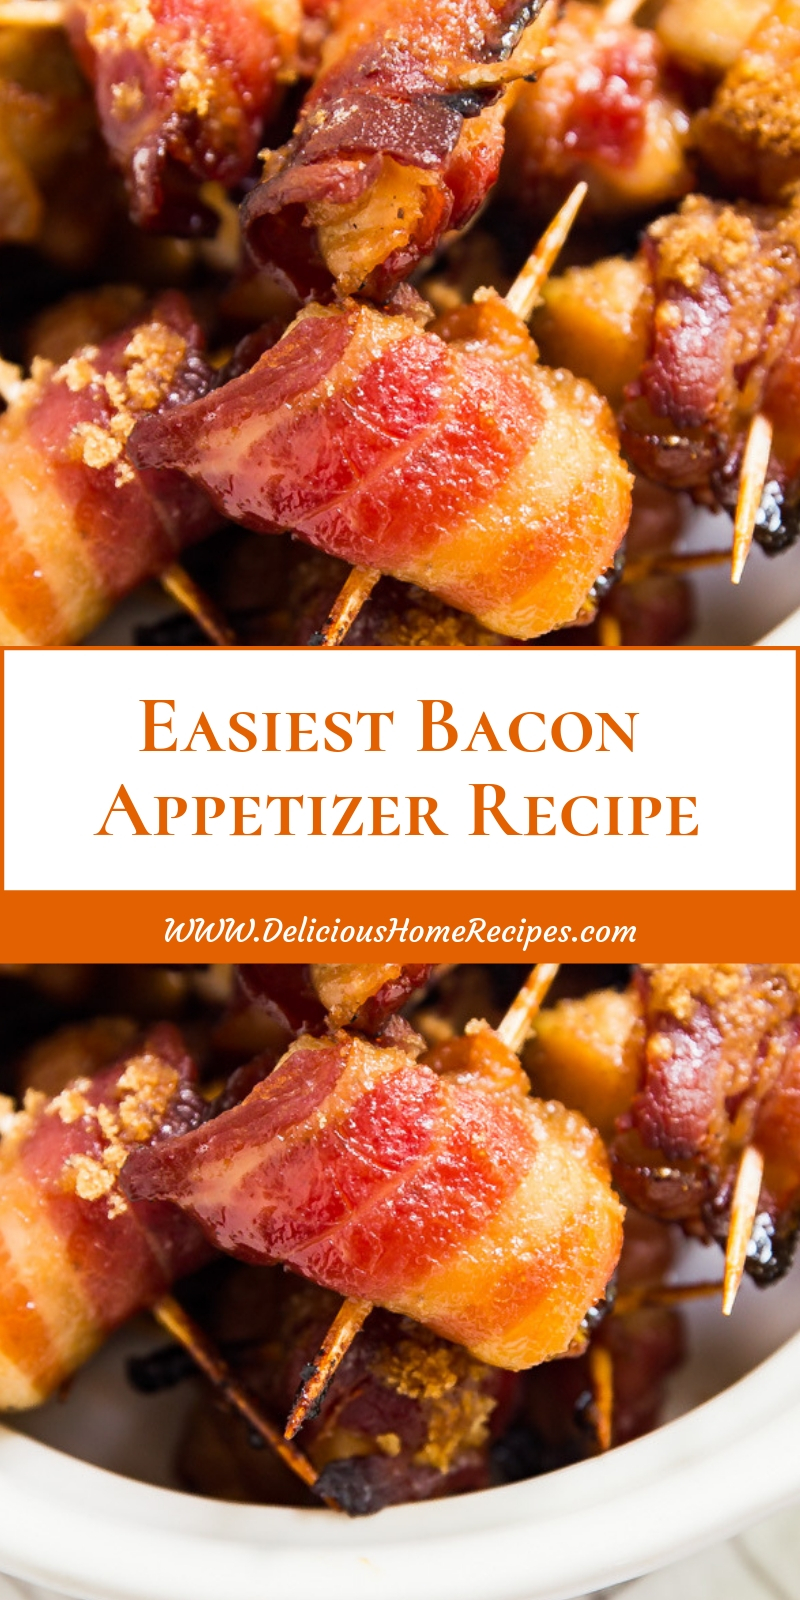 Easiest Bacon Appetizer Recipe